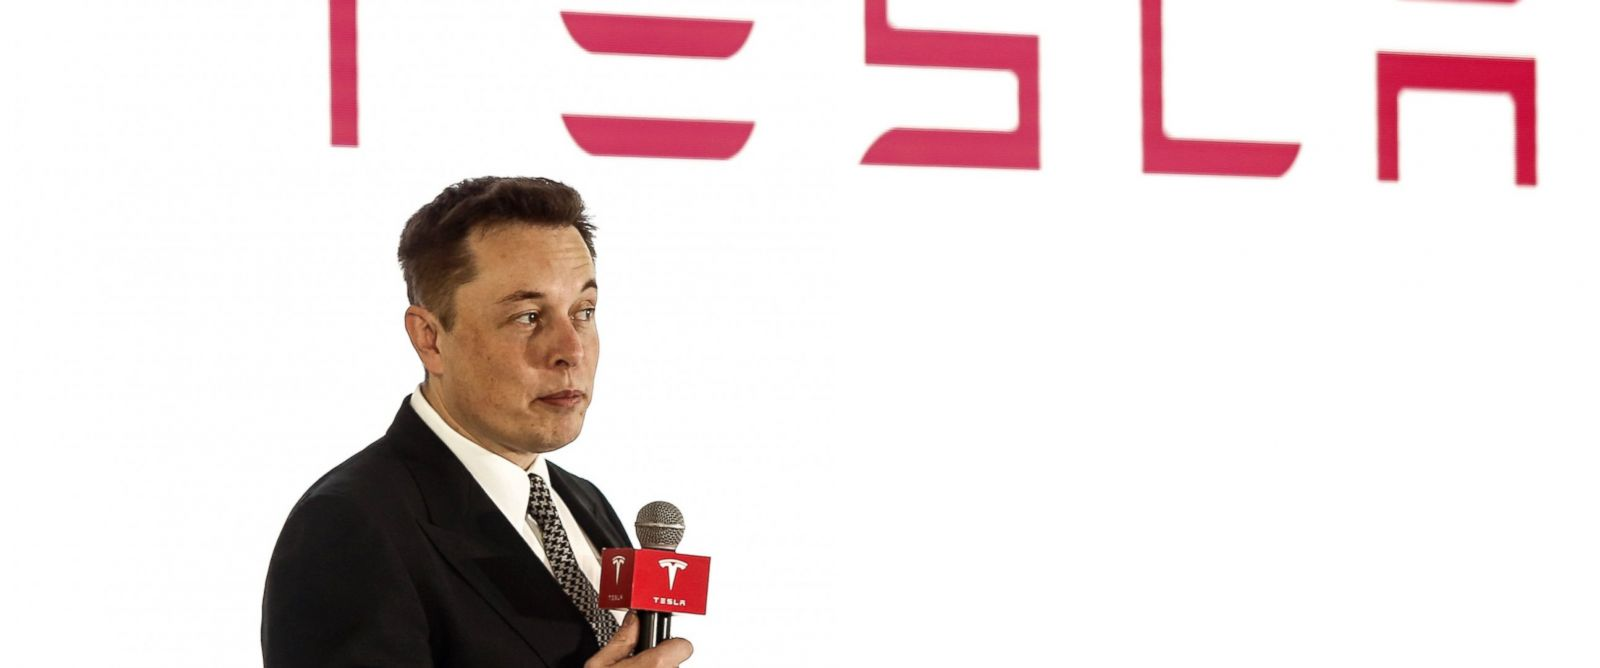 PHOTO: Elon Musk of Tesla Motors addresses a press conference, Oct. 23, 2015 in Beijing, China.